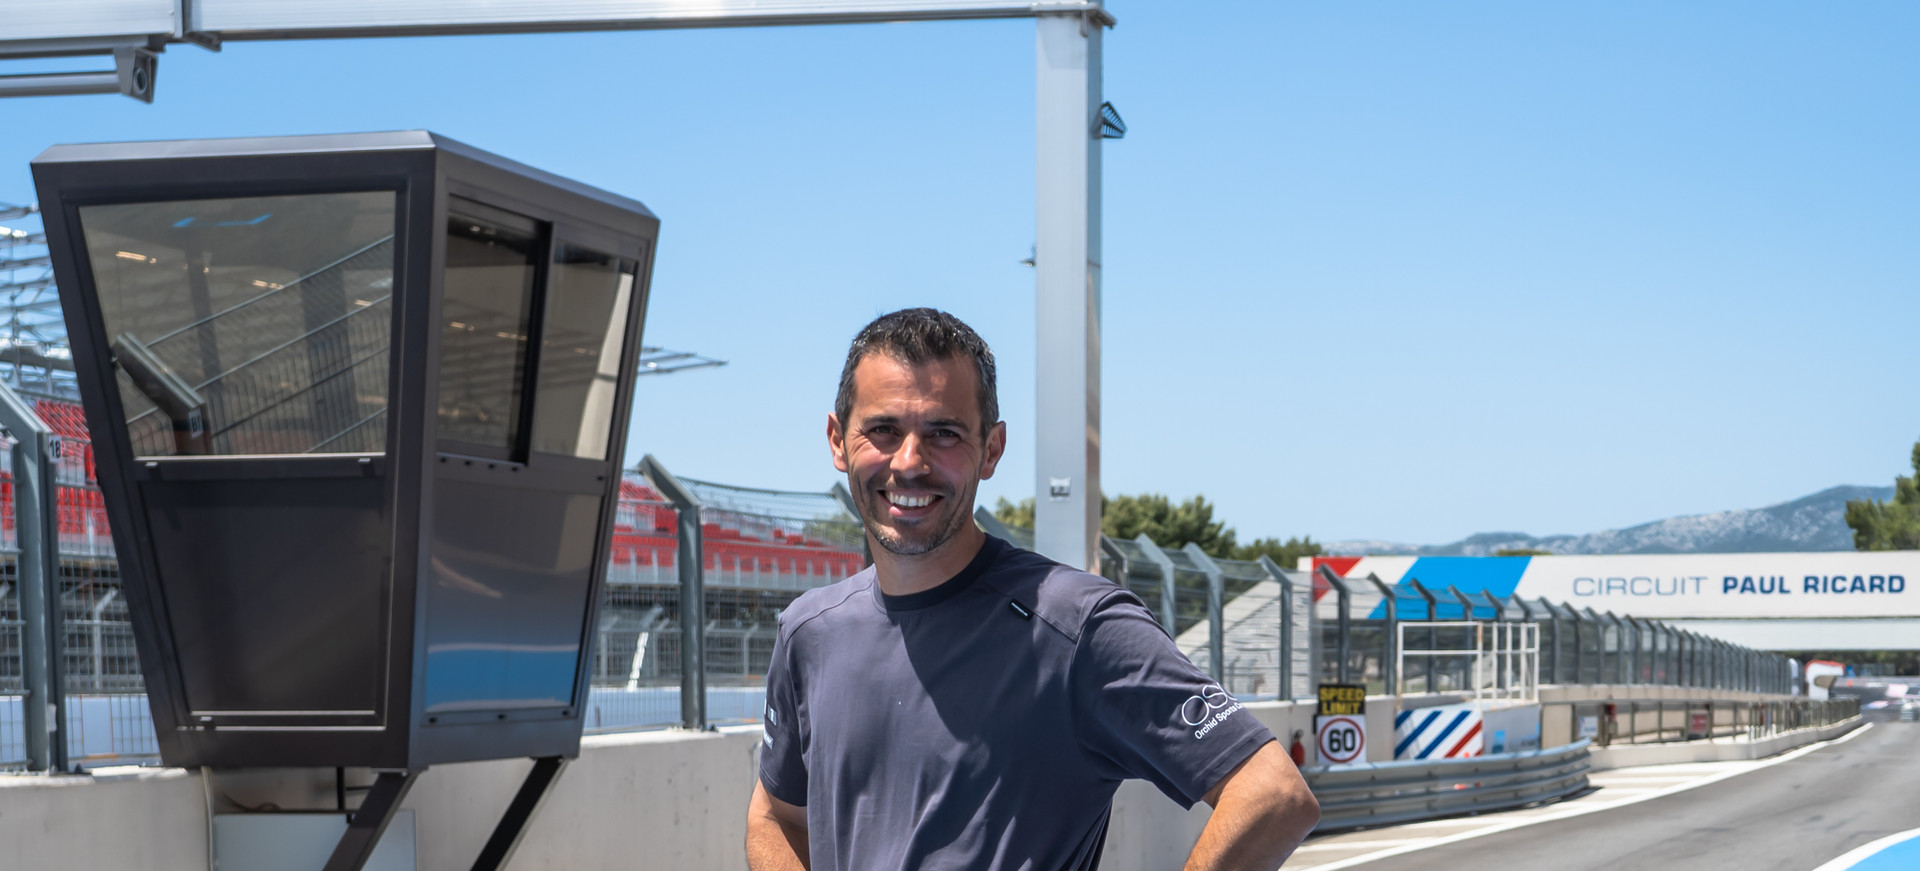 Gérard Mathieux, technicien Orchid Racing Team 2019